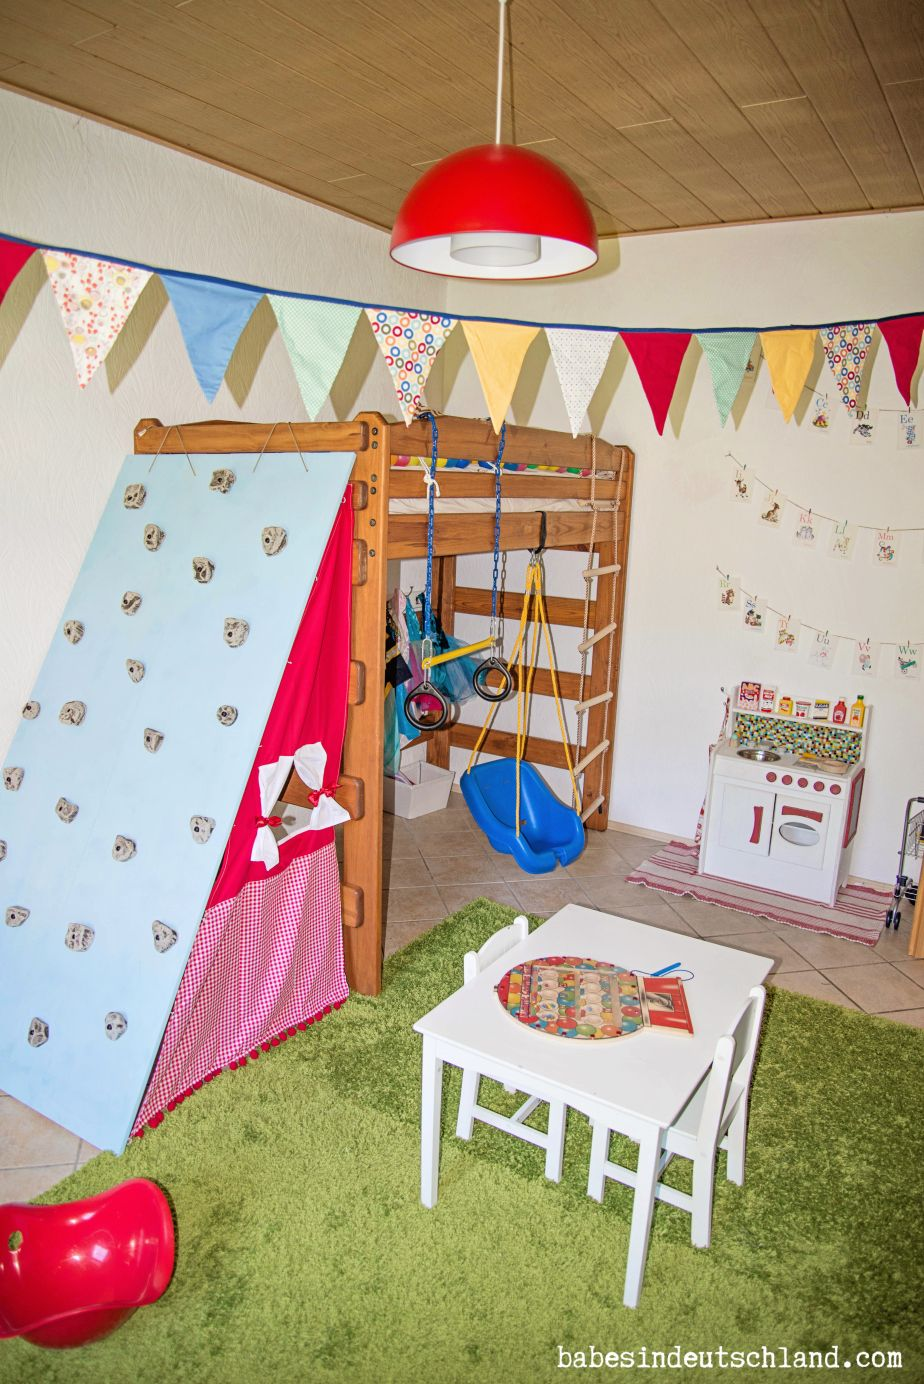 Babes in deutschland a whimsical woodland playroom daycare room